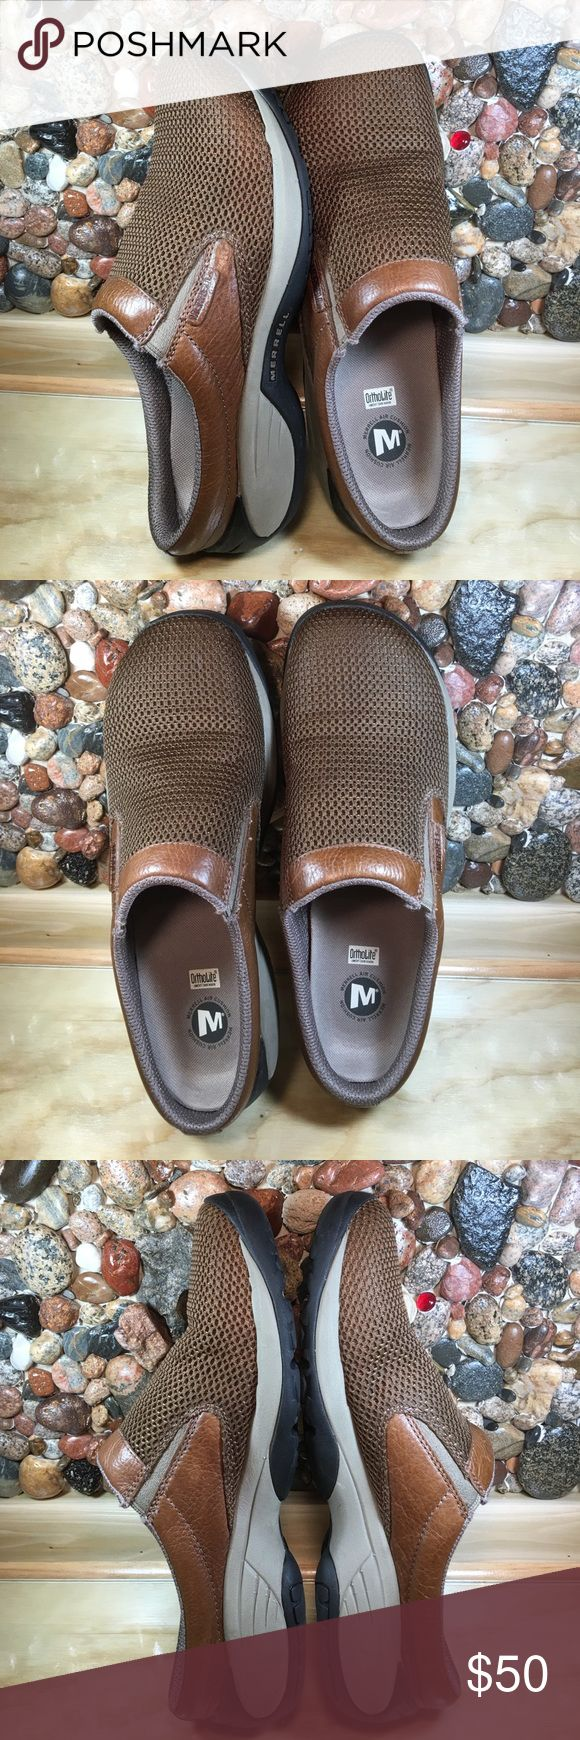 """Men's Merrell Air Cushion Leather & Mesh Mules 10 Excellent condition. No flaws. Air cushion. Mesh top, leather trim. Non slip sole. Please look carefully at each picture so you can see how wonderful these shoes are. My husband has diabetic neuropathy and can't wear these since he has lost his feeling in his feet. Never worn outside. The length measures 11 1/2"""" from toe to heel.  Widest part at the ball is 3 3/4""""The back comes up 1"""" and doesn't get smashed like cheap mules do.They have 1…"""